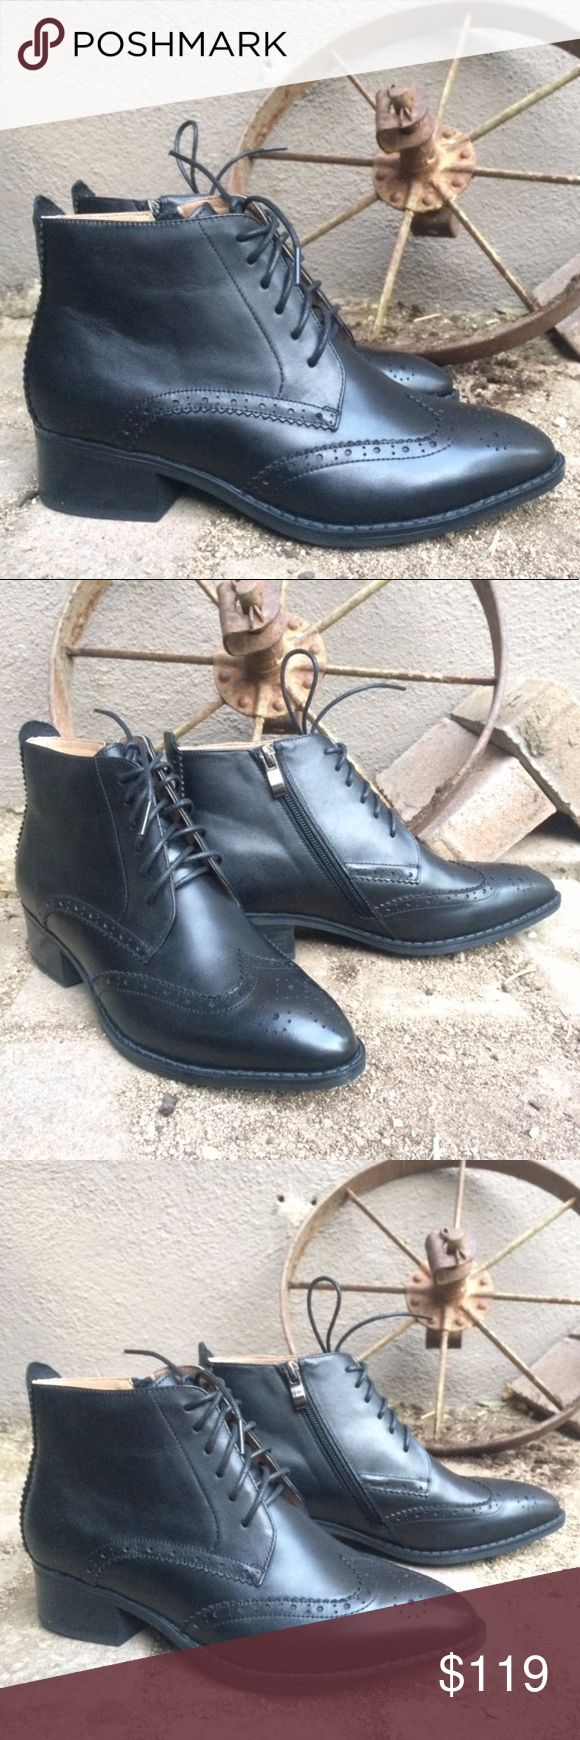 Black Women's Brogue genuine leather ankle boots Black Women's Brogue / Wingtip Boots genuine leather ankle length boot size 6.5 Pair of gorgeous new never worn black genuine leather brogue boots.   Lace up and zipper sides. Heel 1.5 inches. Size 6.5 This style is hard to find in US stores!   Martin Boots Women Brand Brogue Style Wingtip Ankle Length Lace-Up Genuine Calf Leather Ladies Shoes Handmade Shoes Ankle Boots & Booties